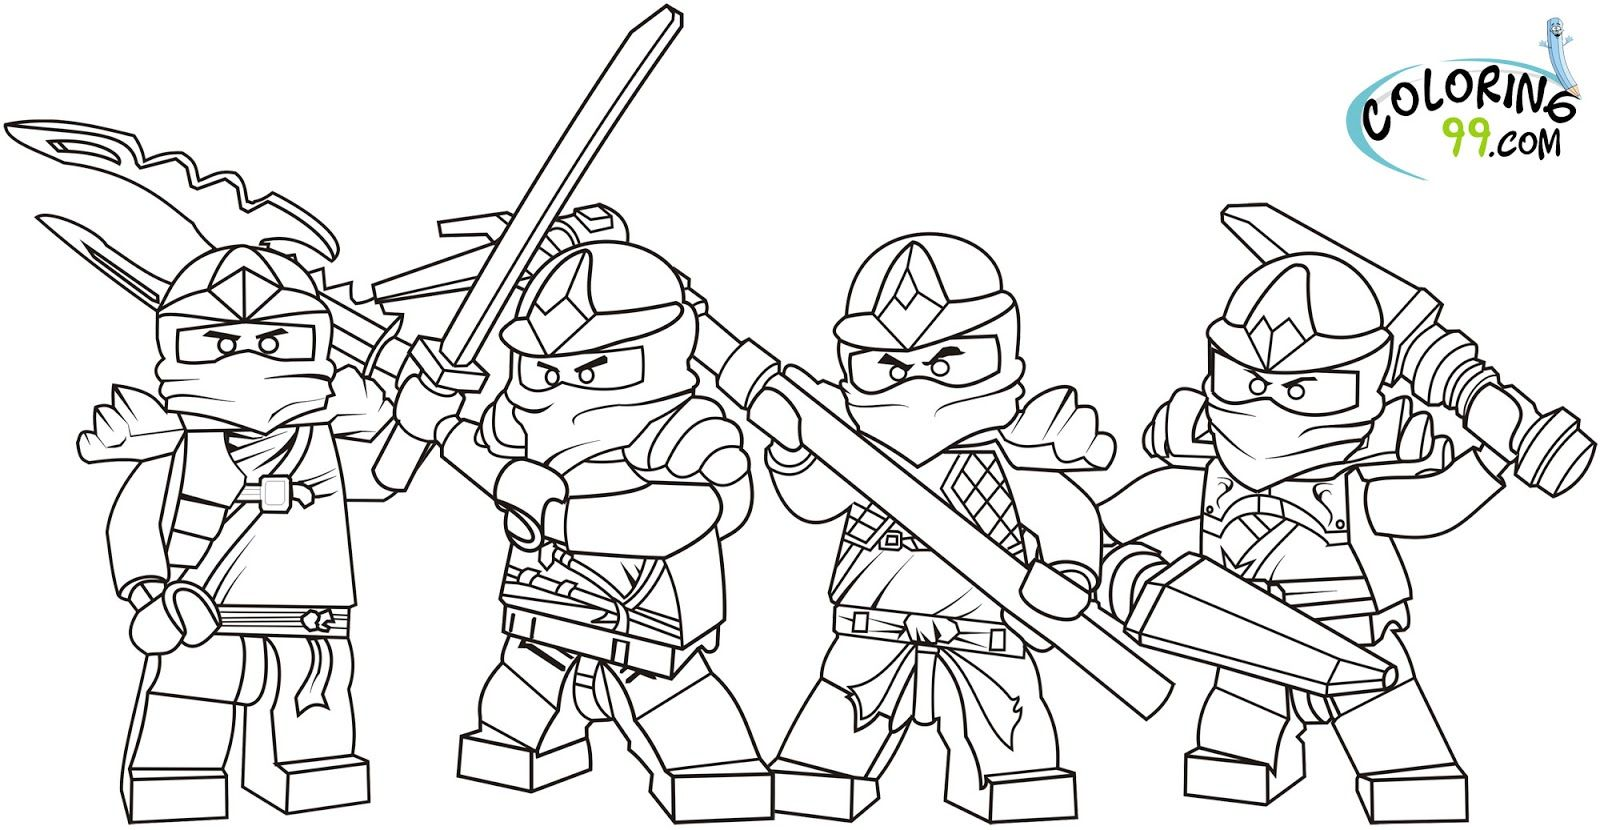 photograph about Ninjago Printable Coloring Pages referred to as lego dc tremendous heros caloring internet pages Lego Ninjago Coloring